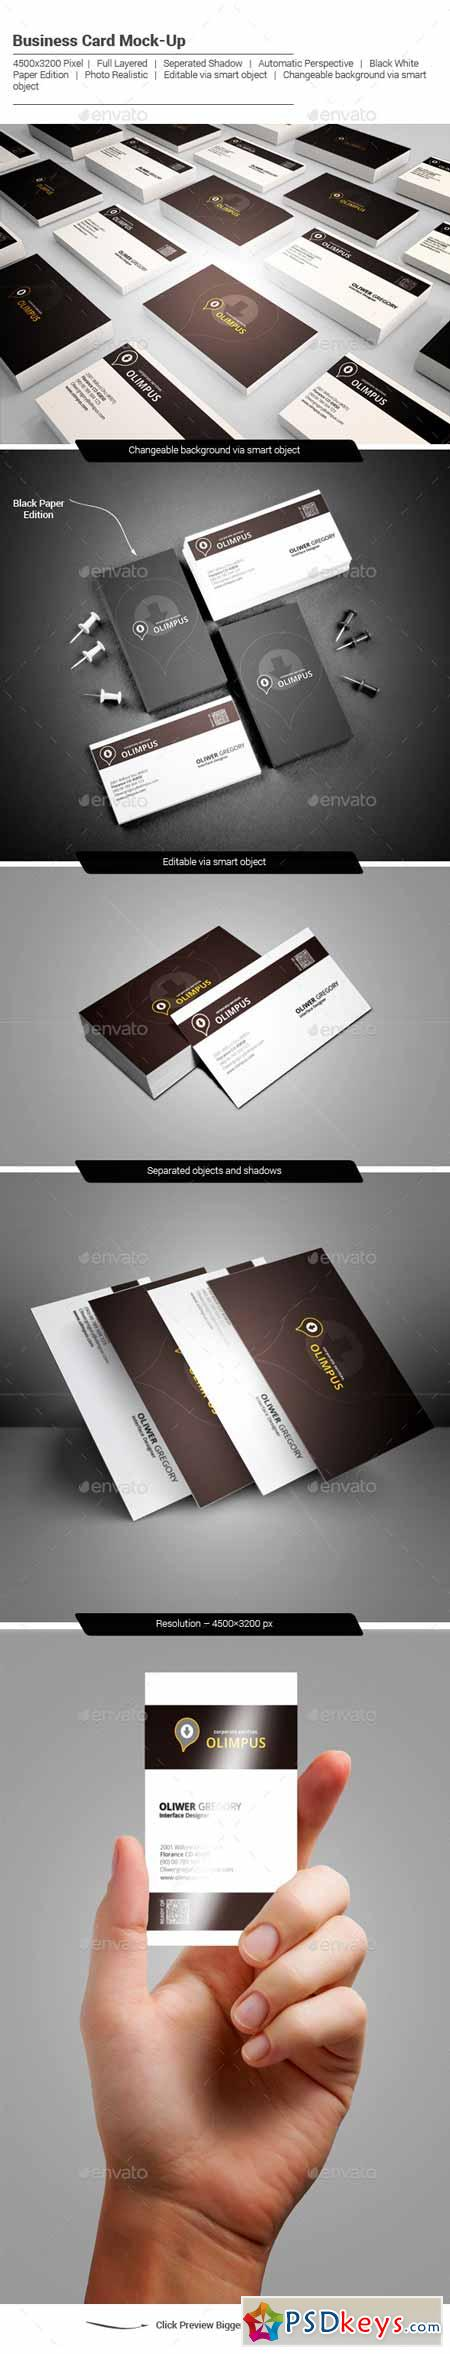 Photo realistic business card mock up 9959550 free download photo realistic business card mock up 9959550 colourmoves